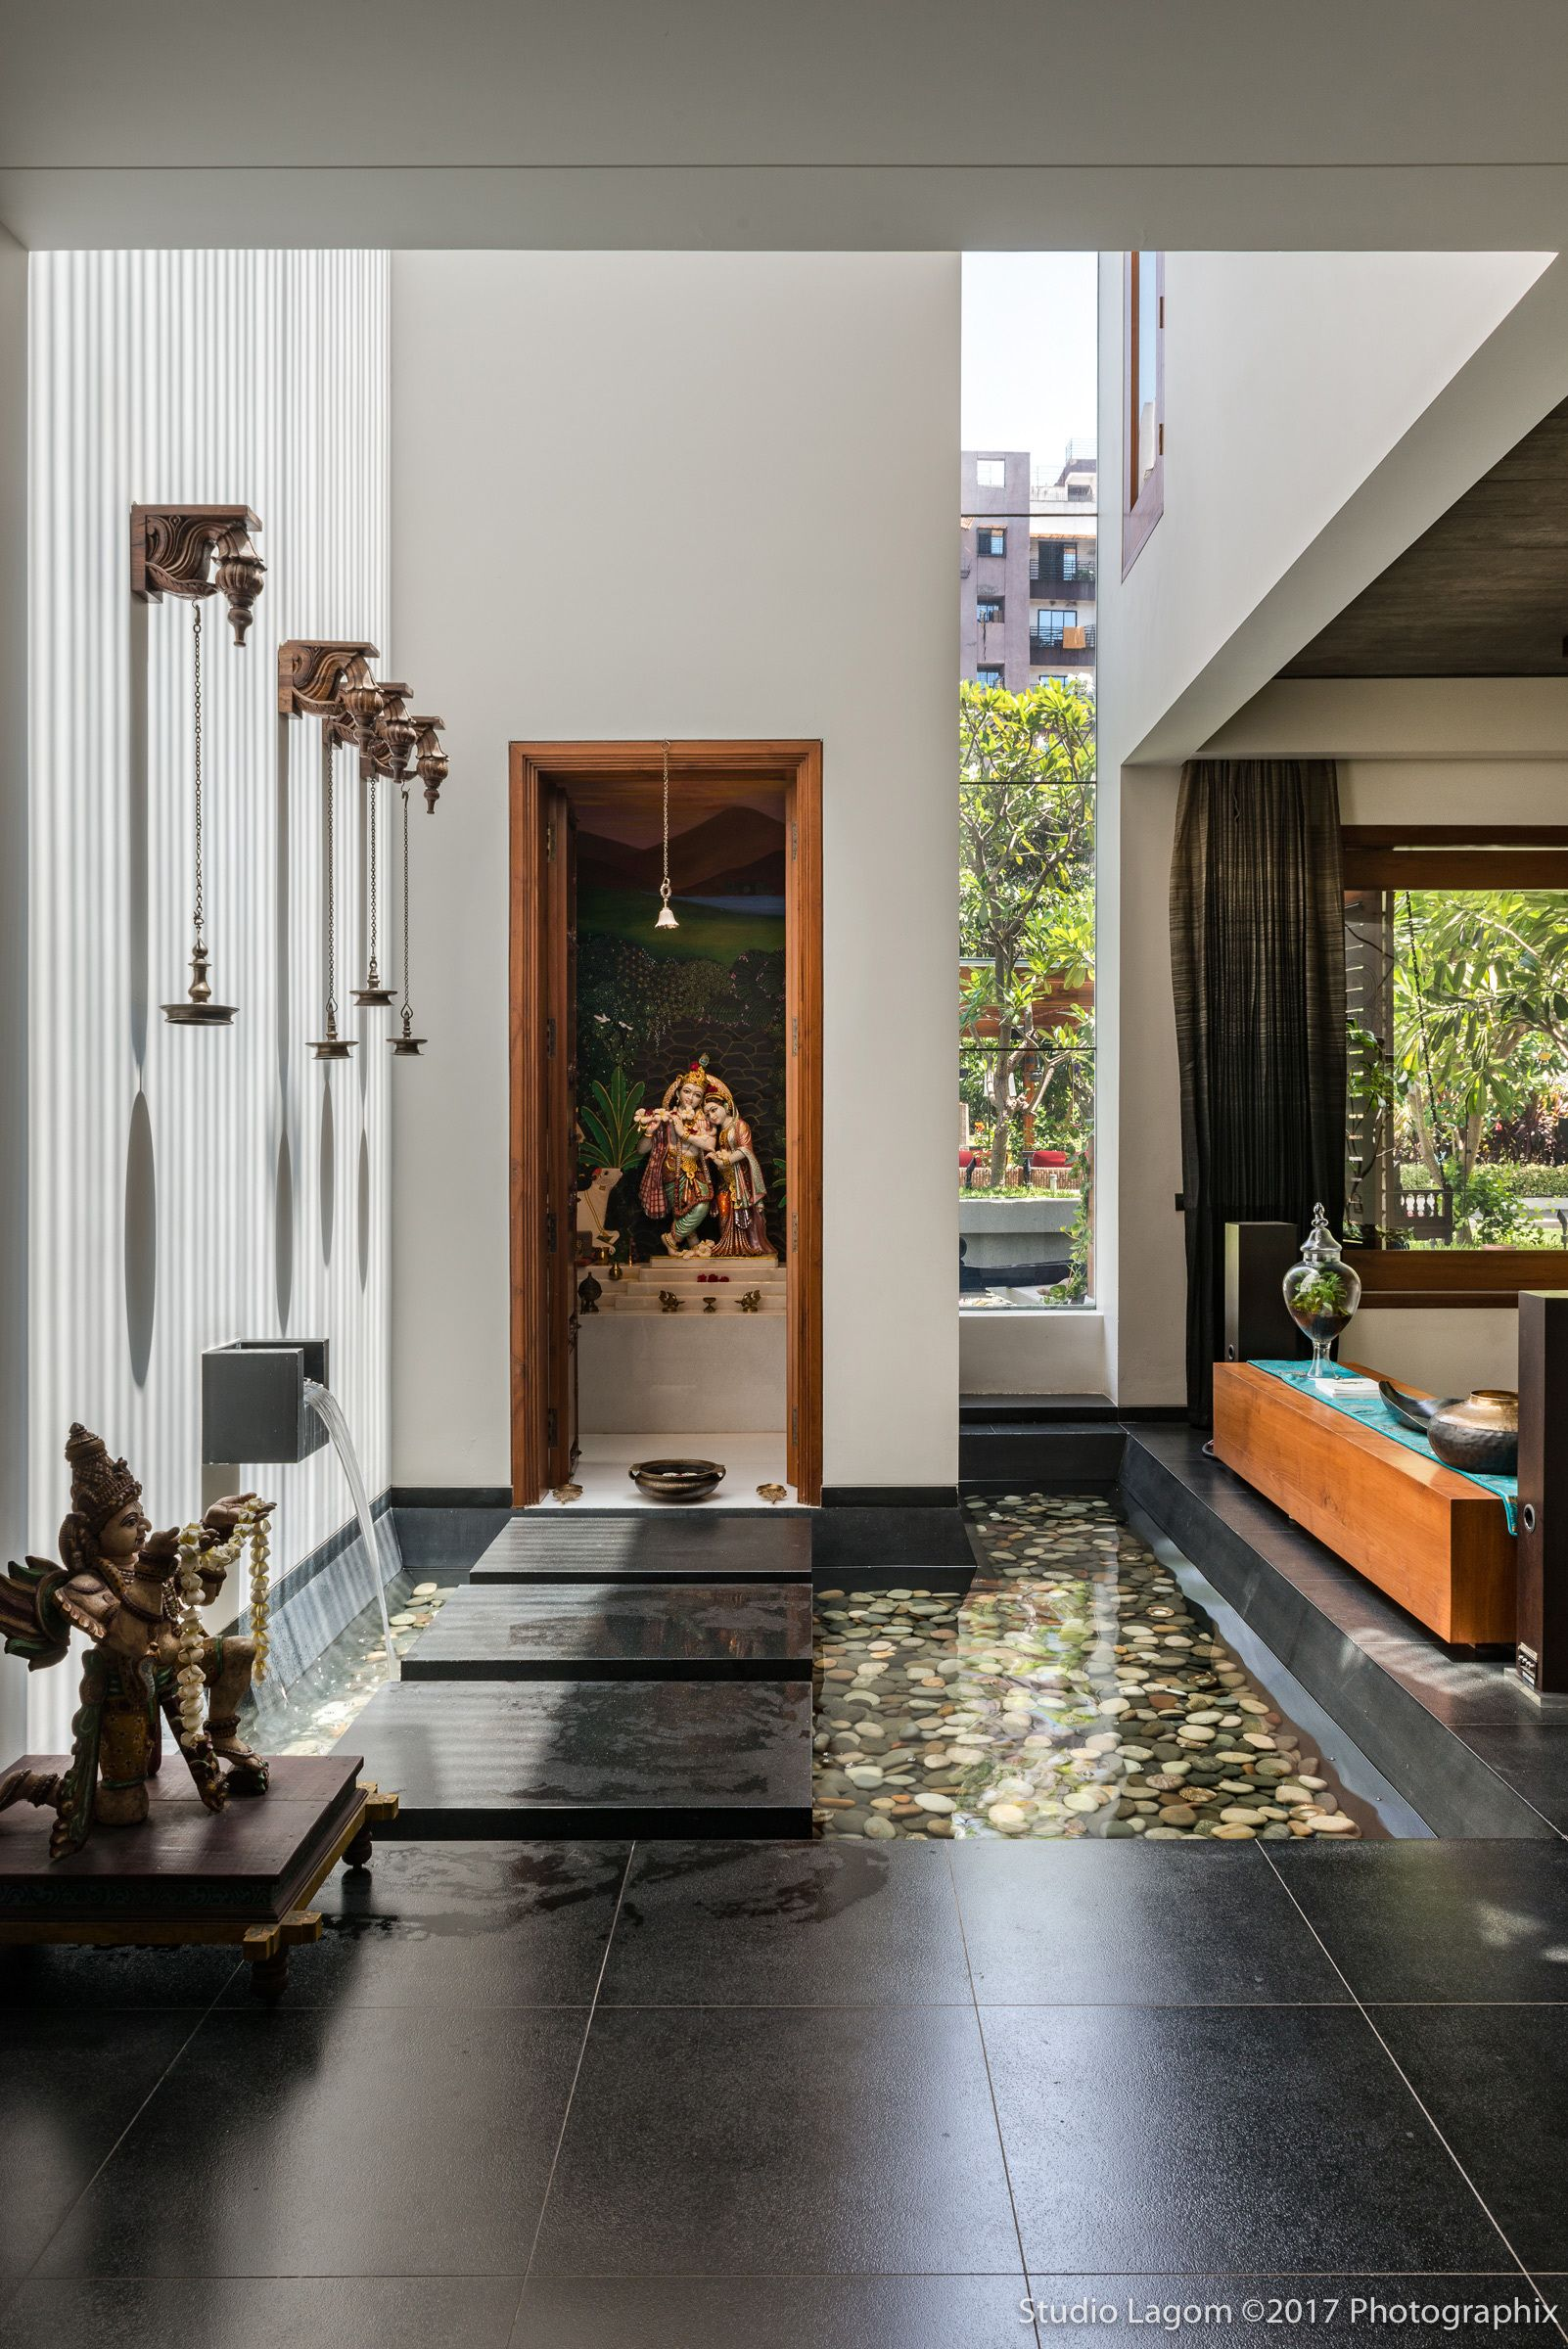 9 Traditional Pooja Room Door Designs In 2020: Gallery Of Skewed House / Studio Lagom